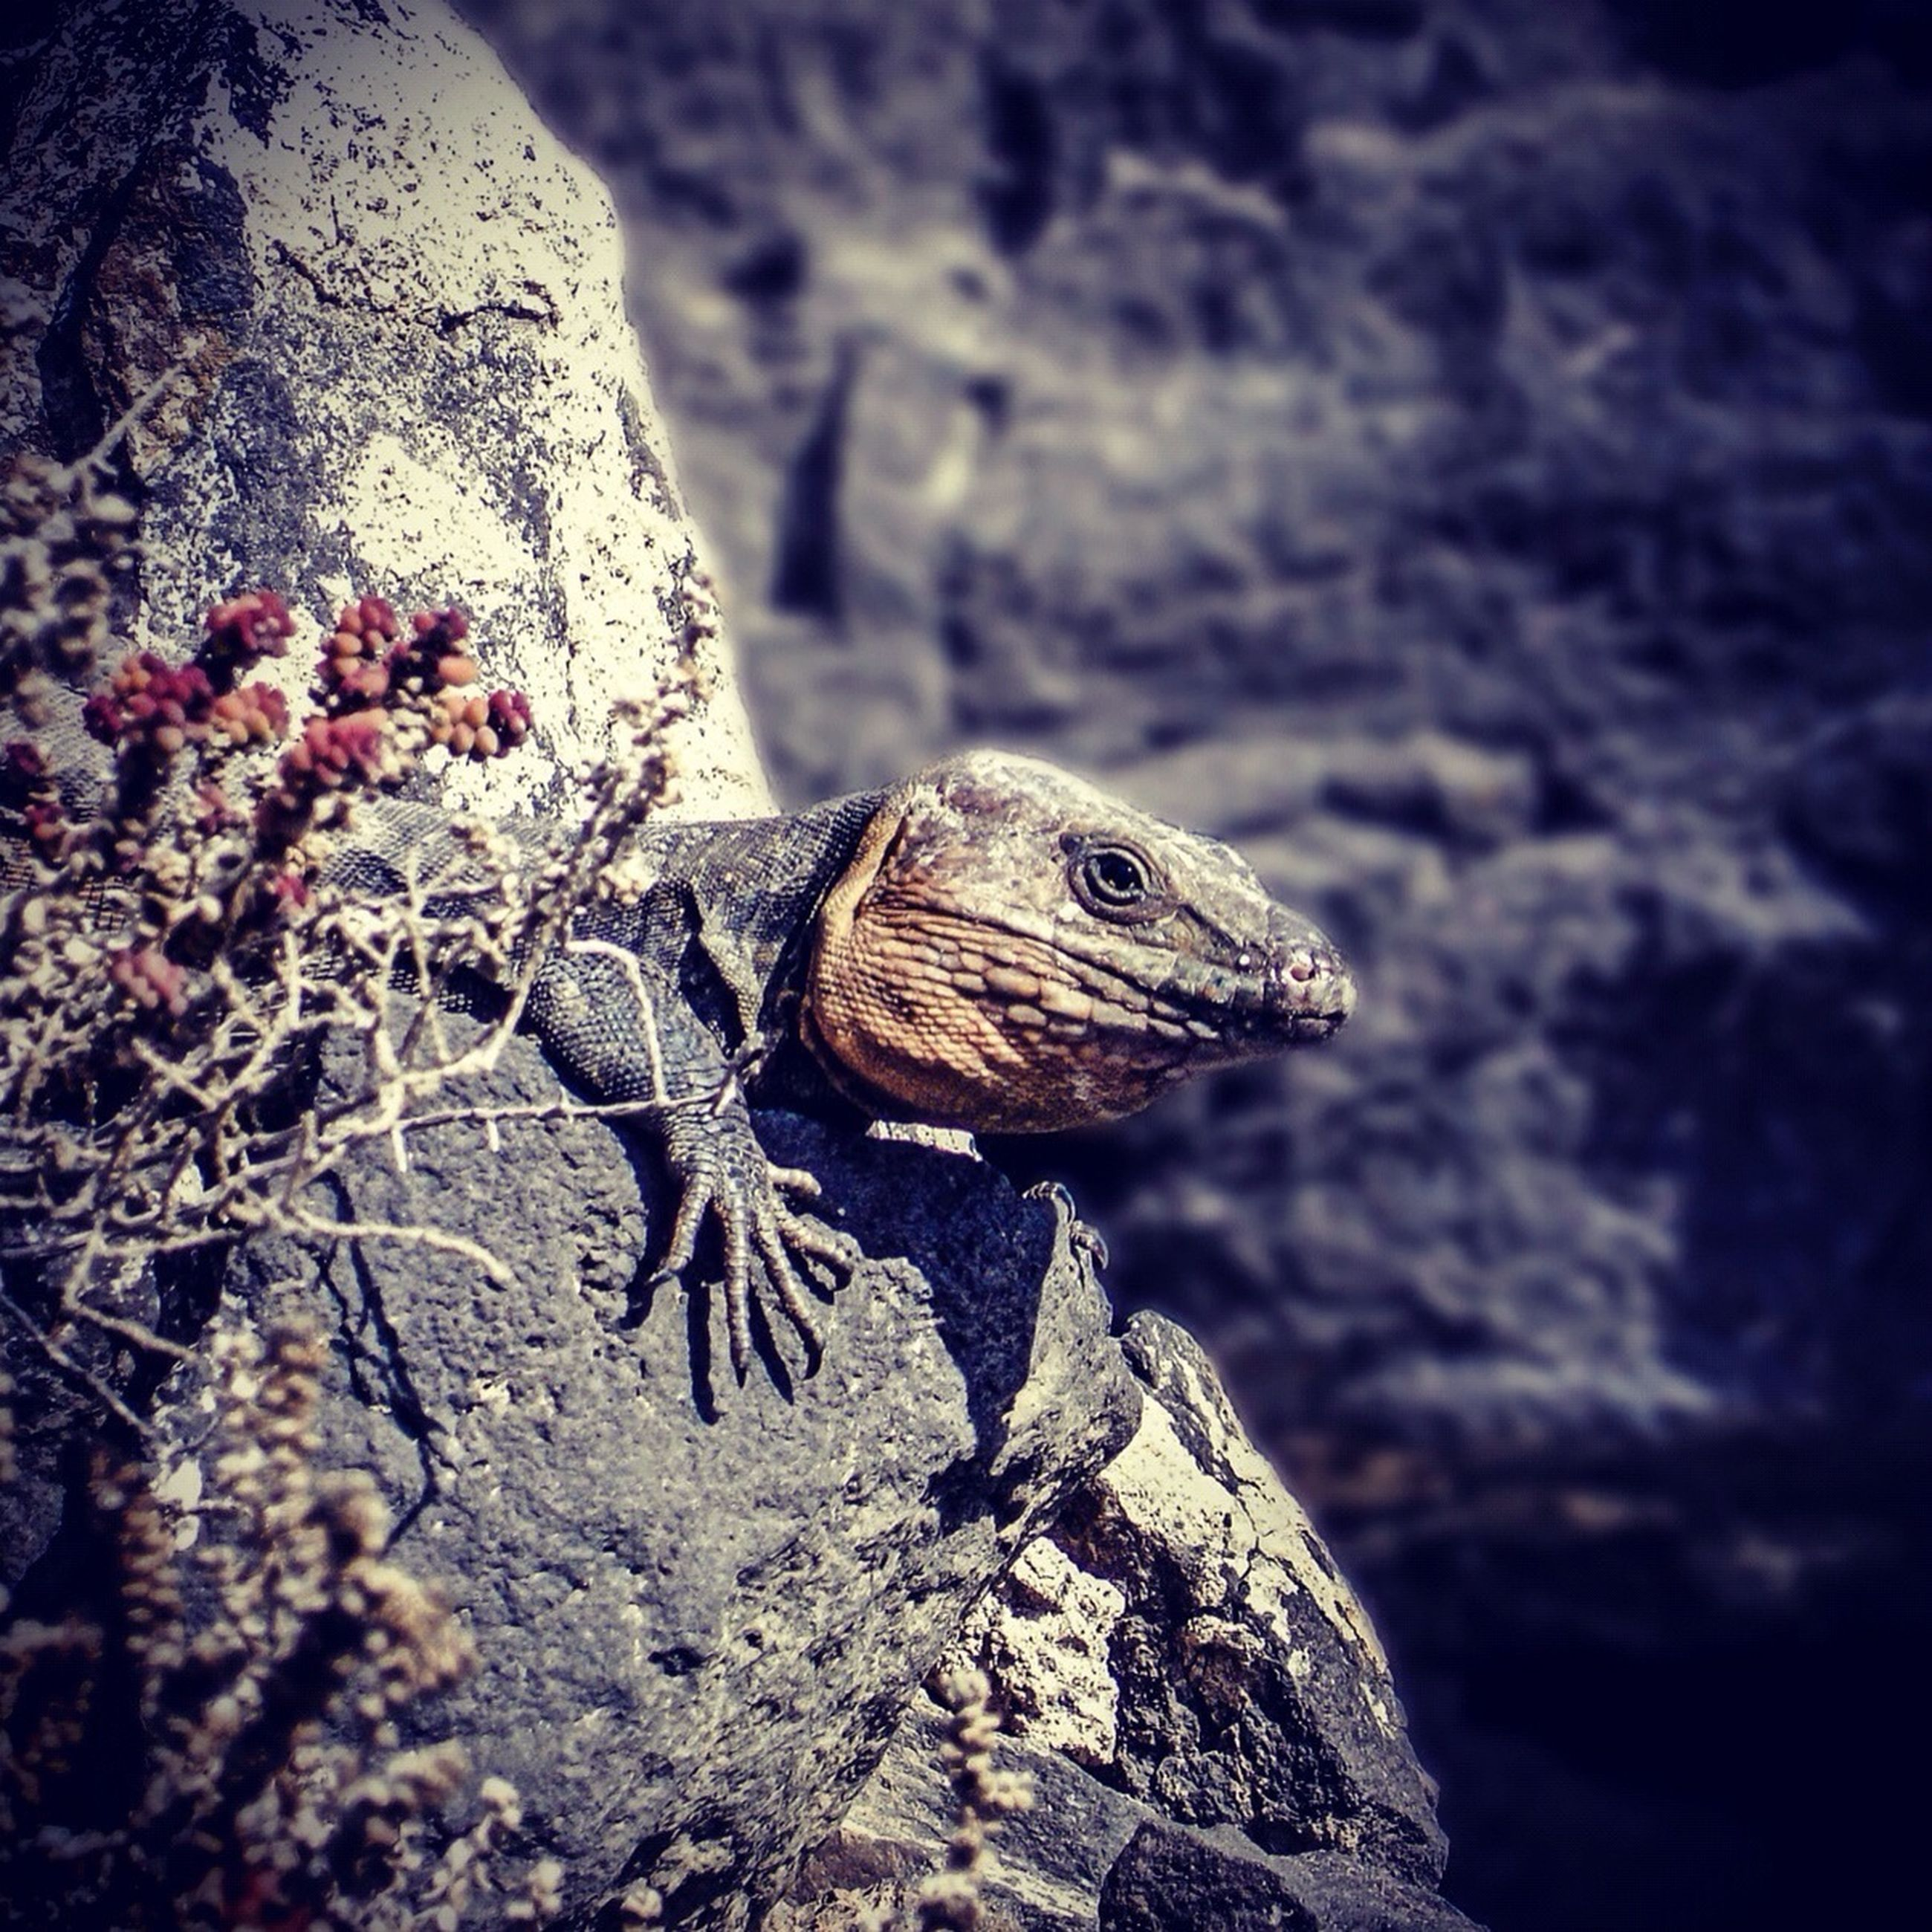 one animal, animal themes, animals in the wild, wildlife, lizard, reptile, close-up, focus on foreground, nature, side view, branch, outdoors, rock - object, day, beauty in nature, natural pattern, full length, selective focus, no people, tree